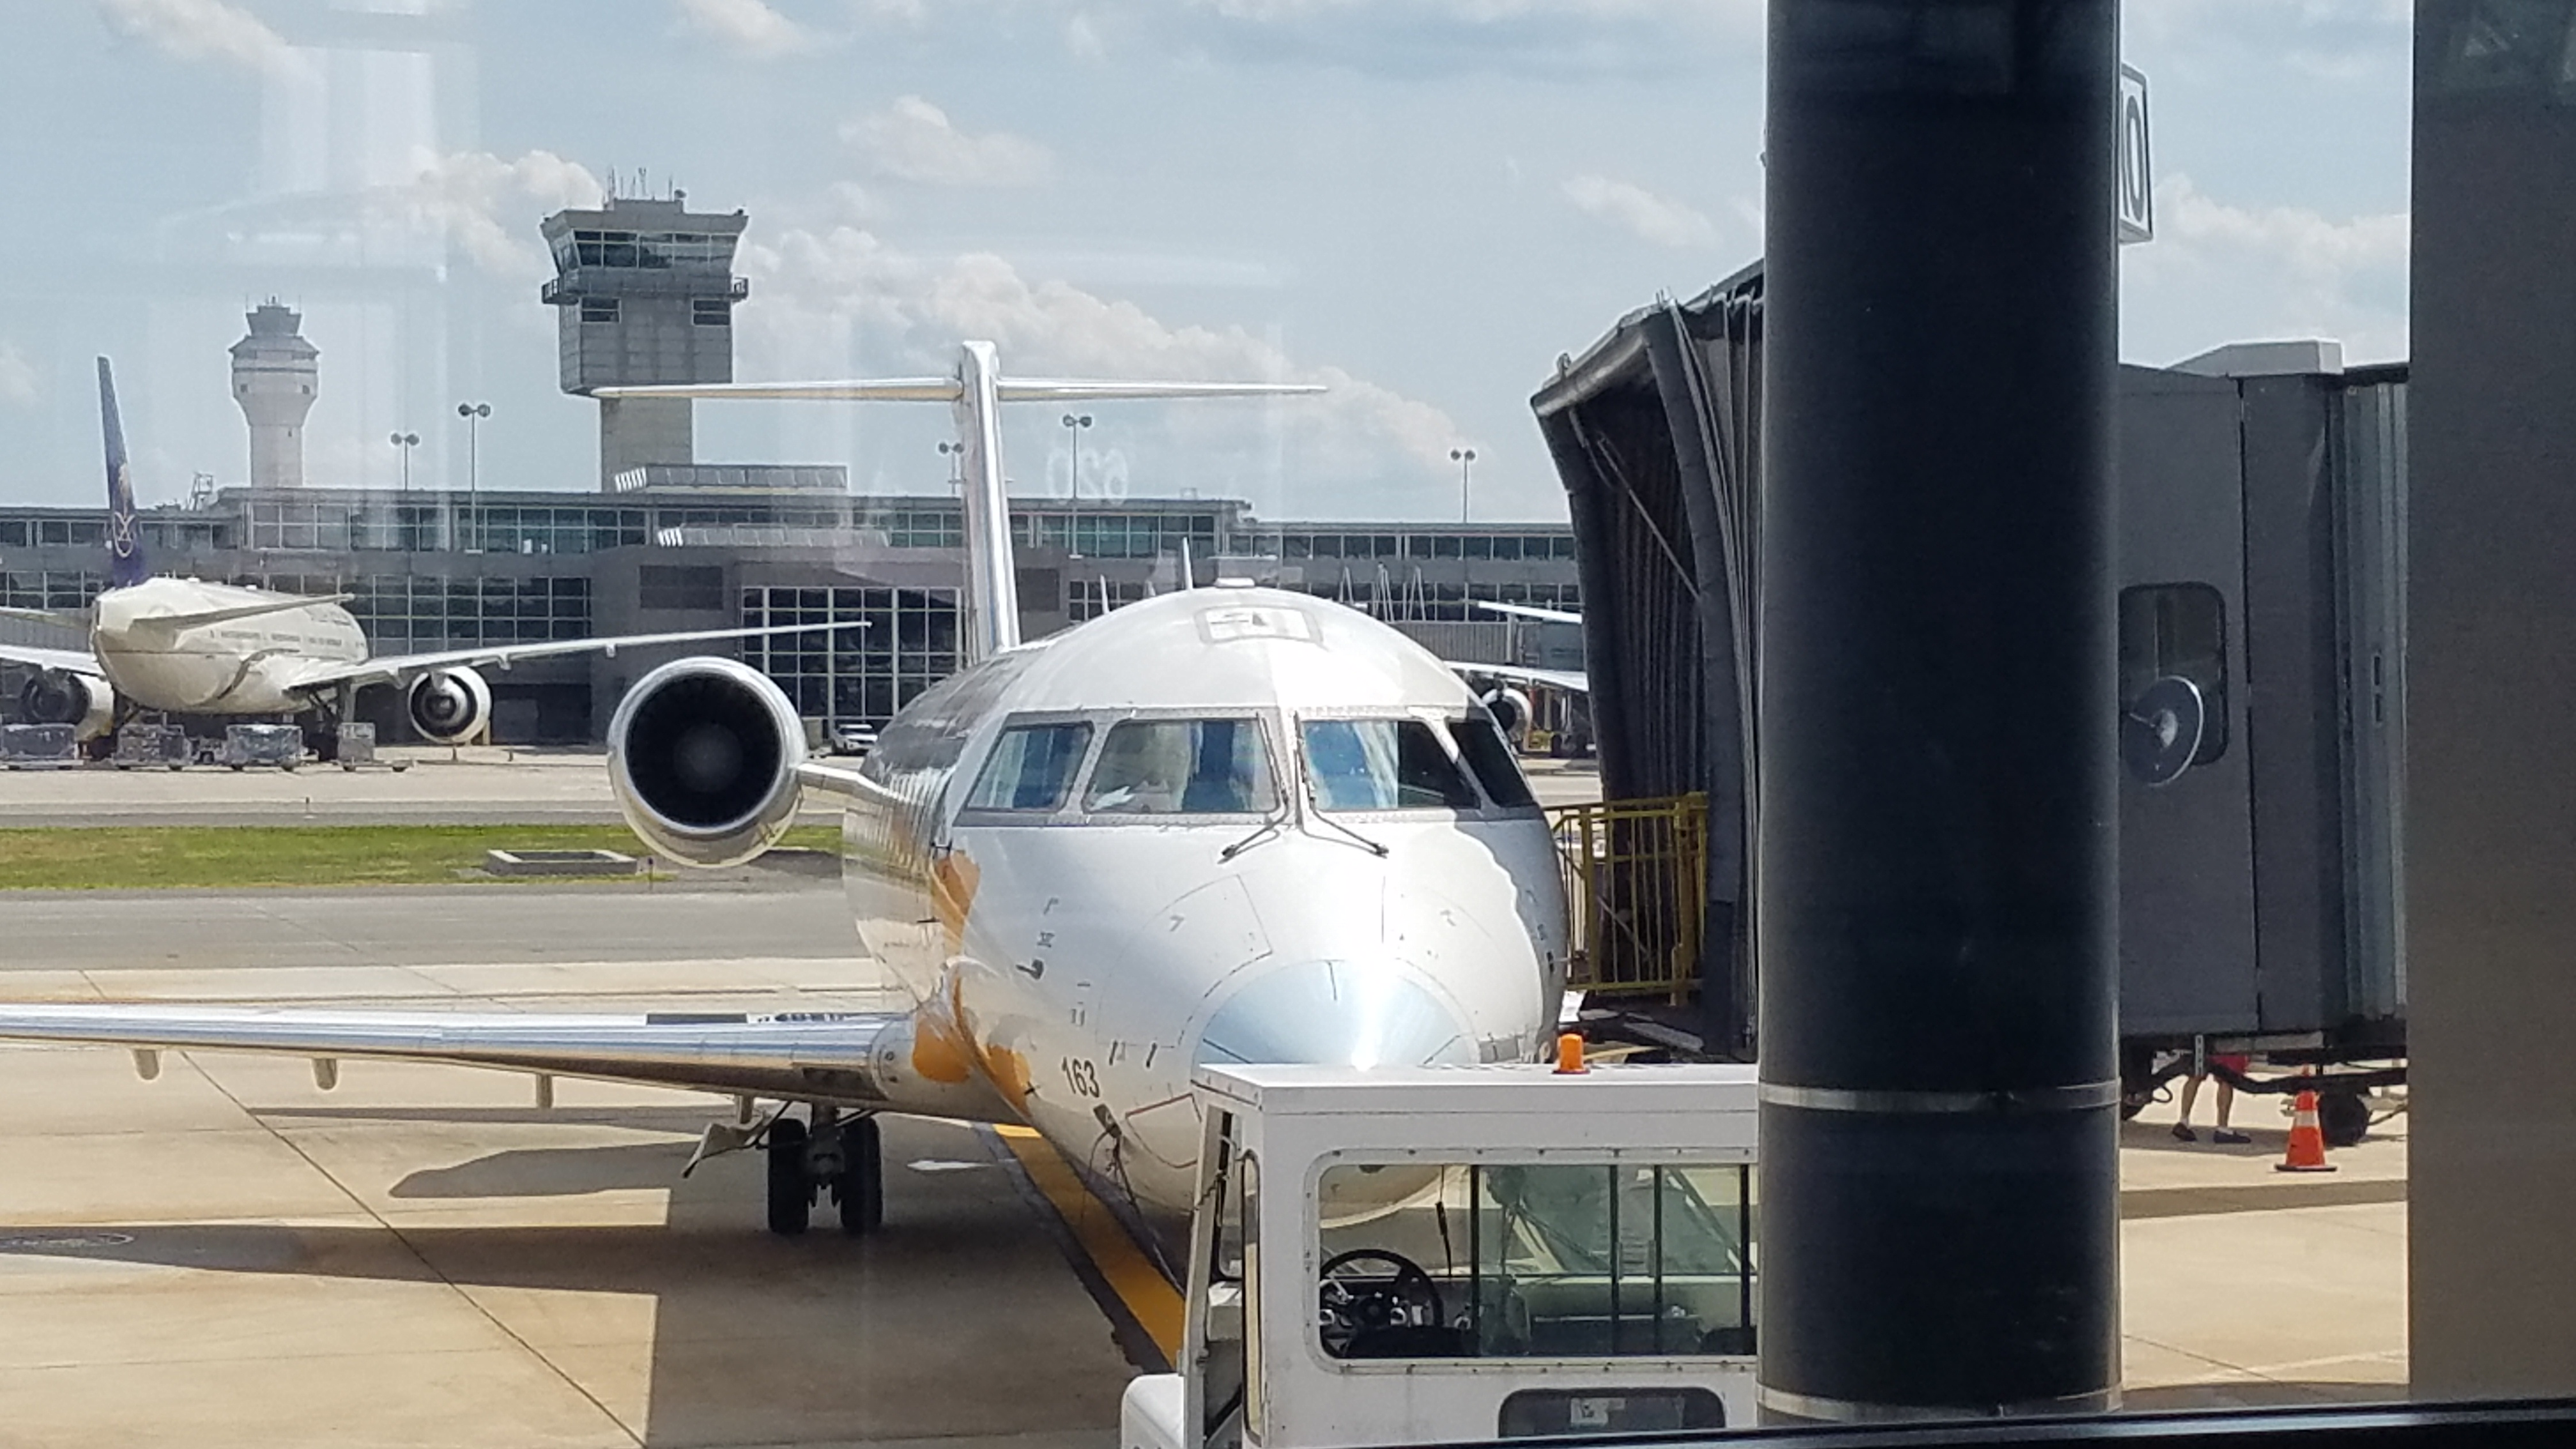 At the gate - Guidelines for First-Time Air Travel